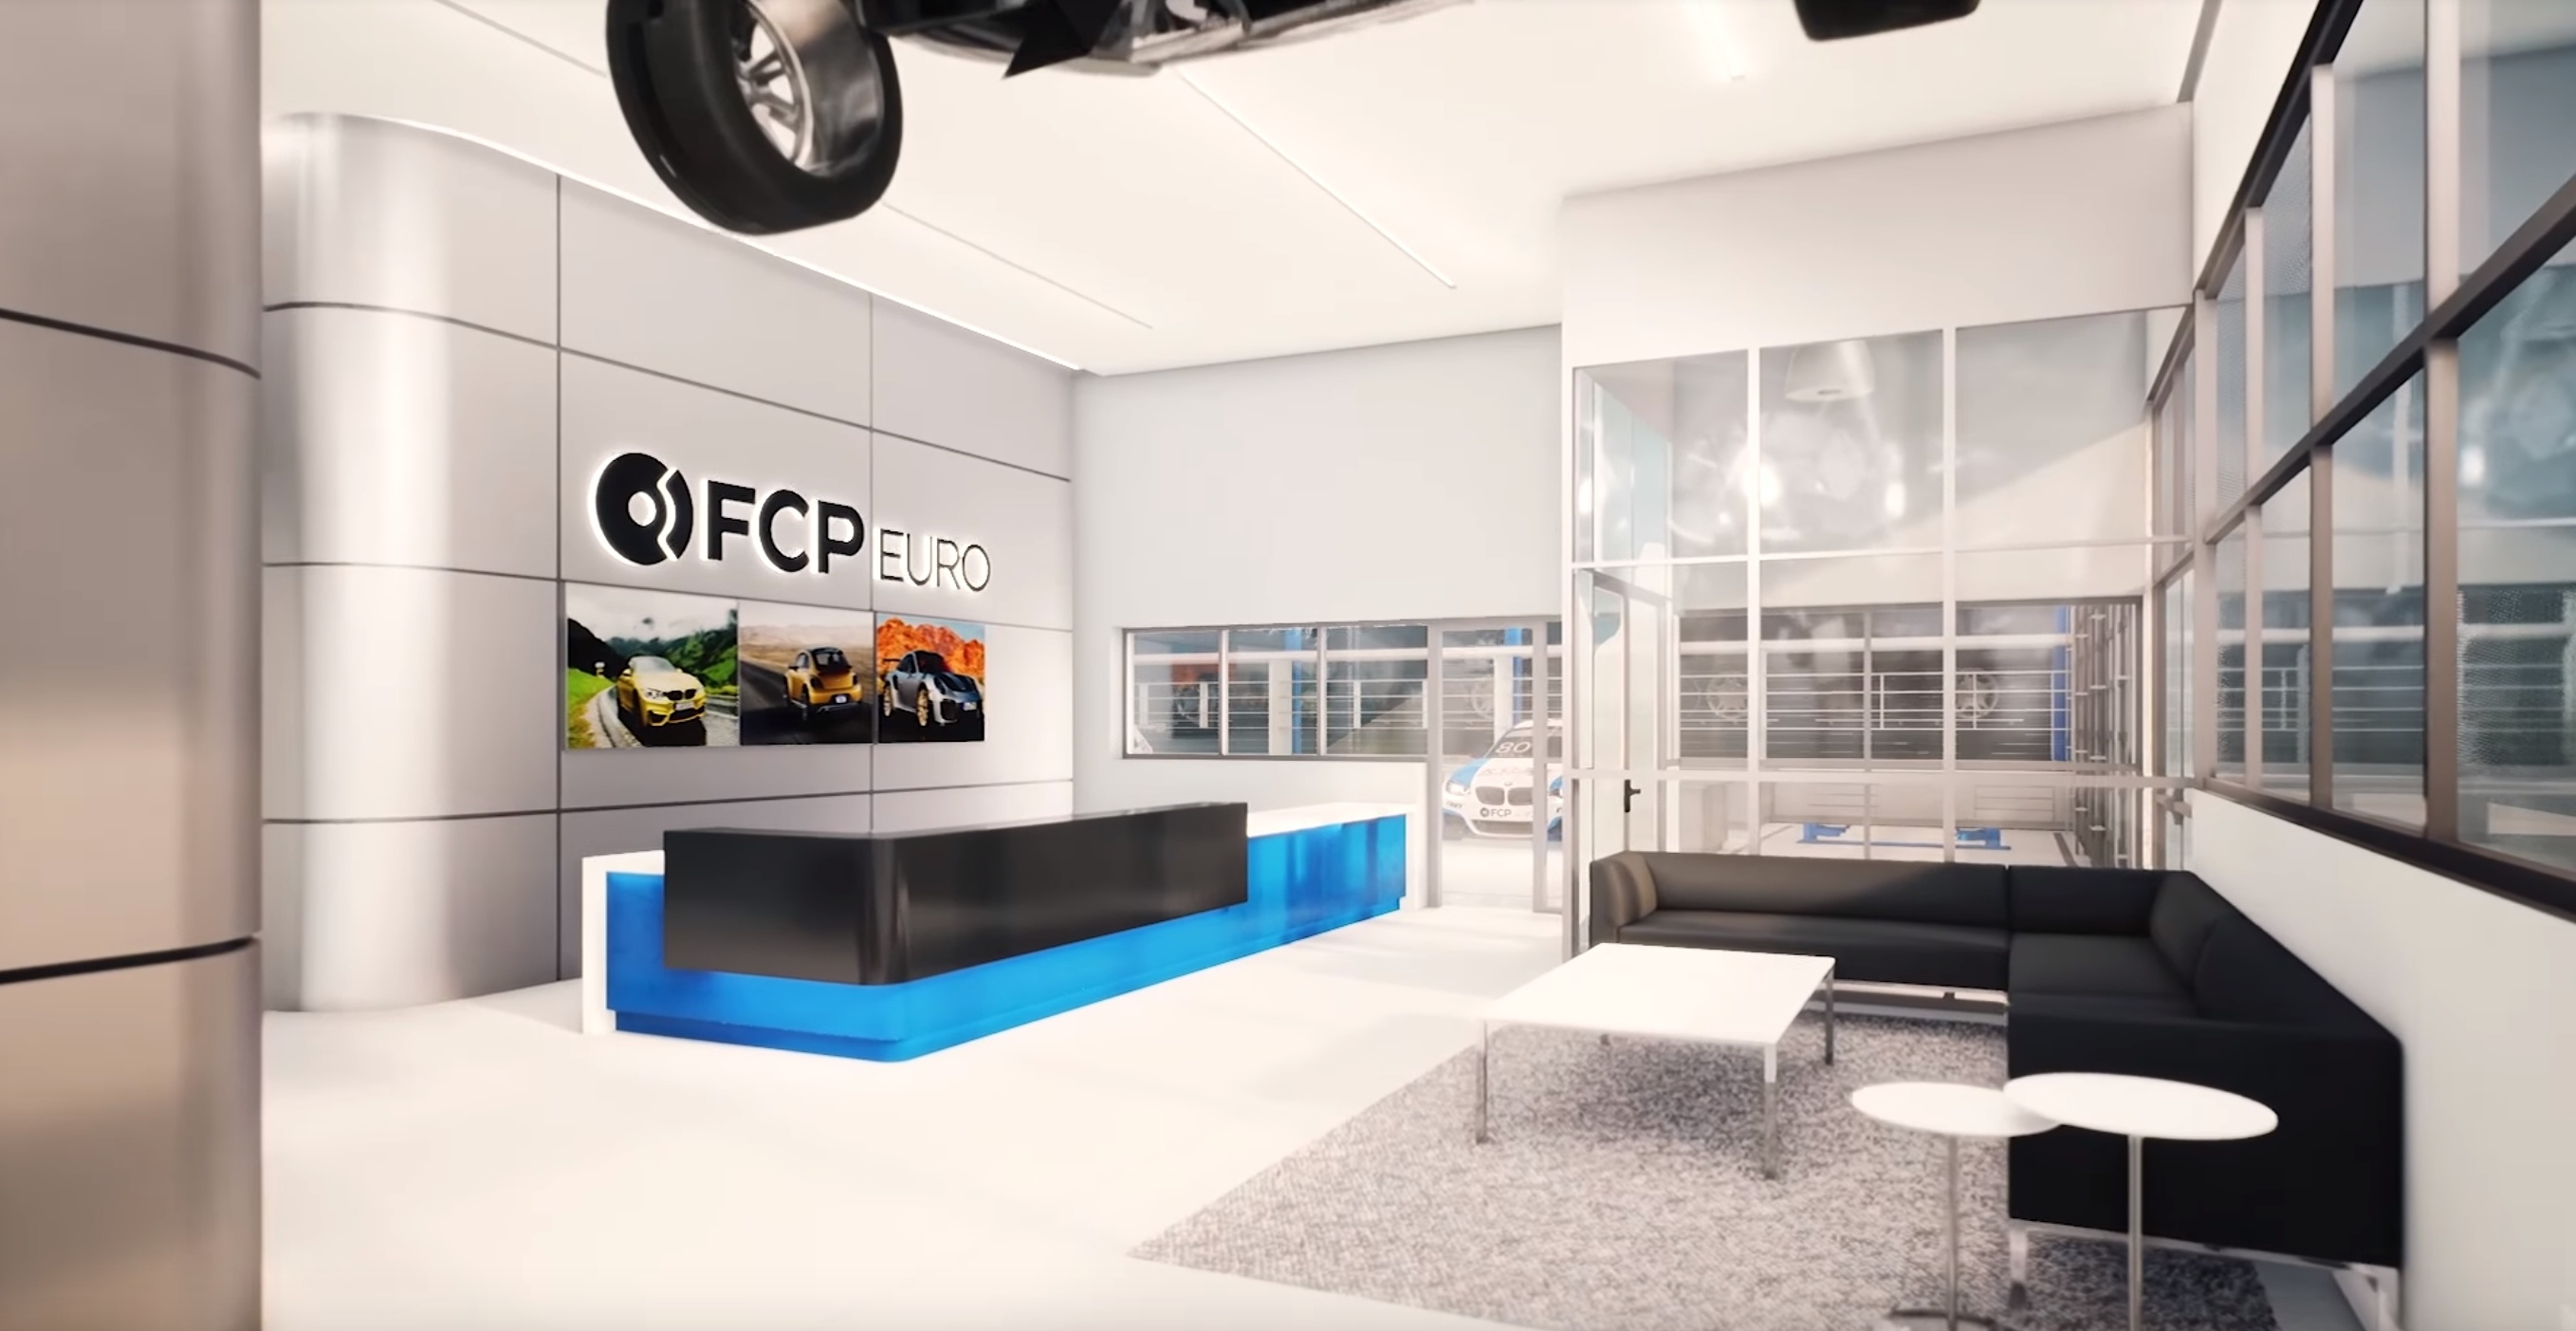 fcp-euro-expansion-customer-pickup-center-2